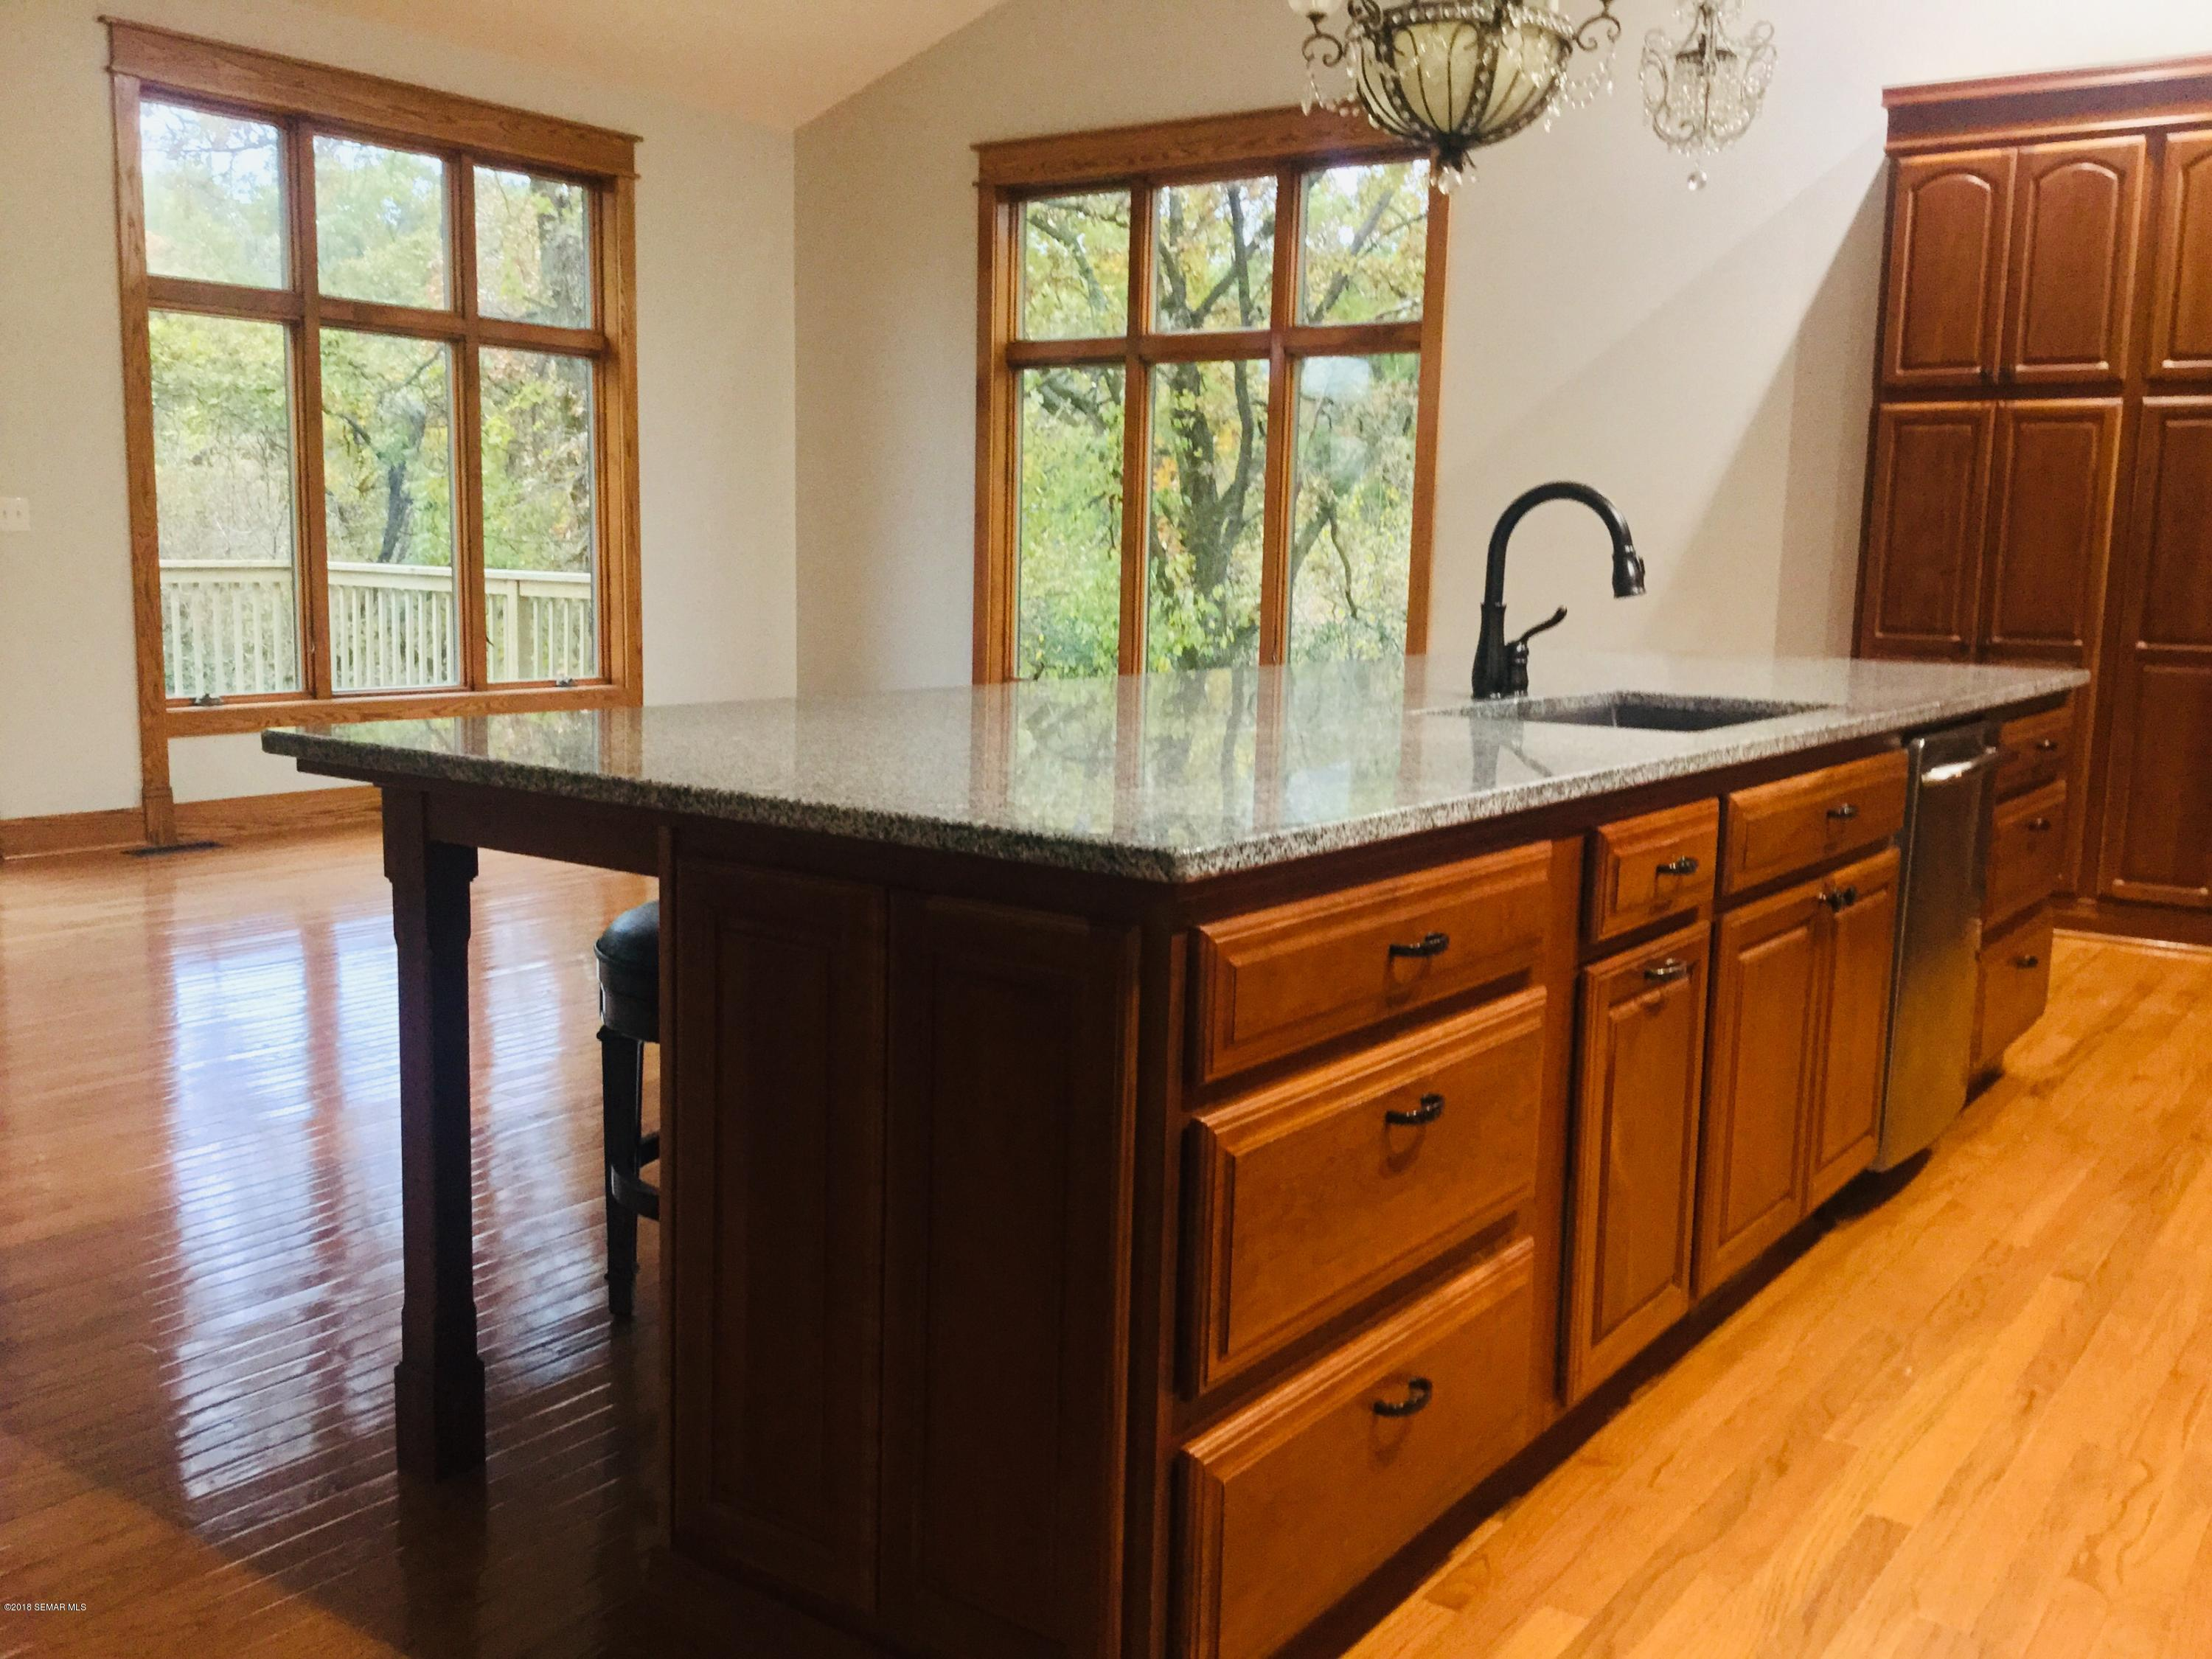 1650 Echo Ridge,Rochester,Minnesota 55902,5 Bedrooms Bedrooms,5 BathroomsBathrooms,Single family residence,Echo Ridge,4091926